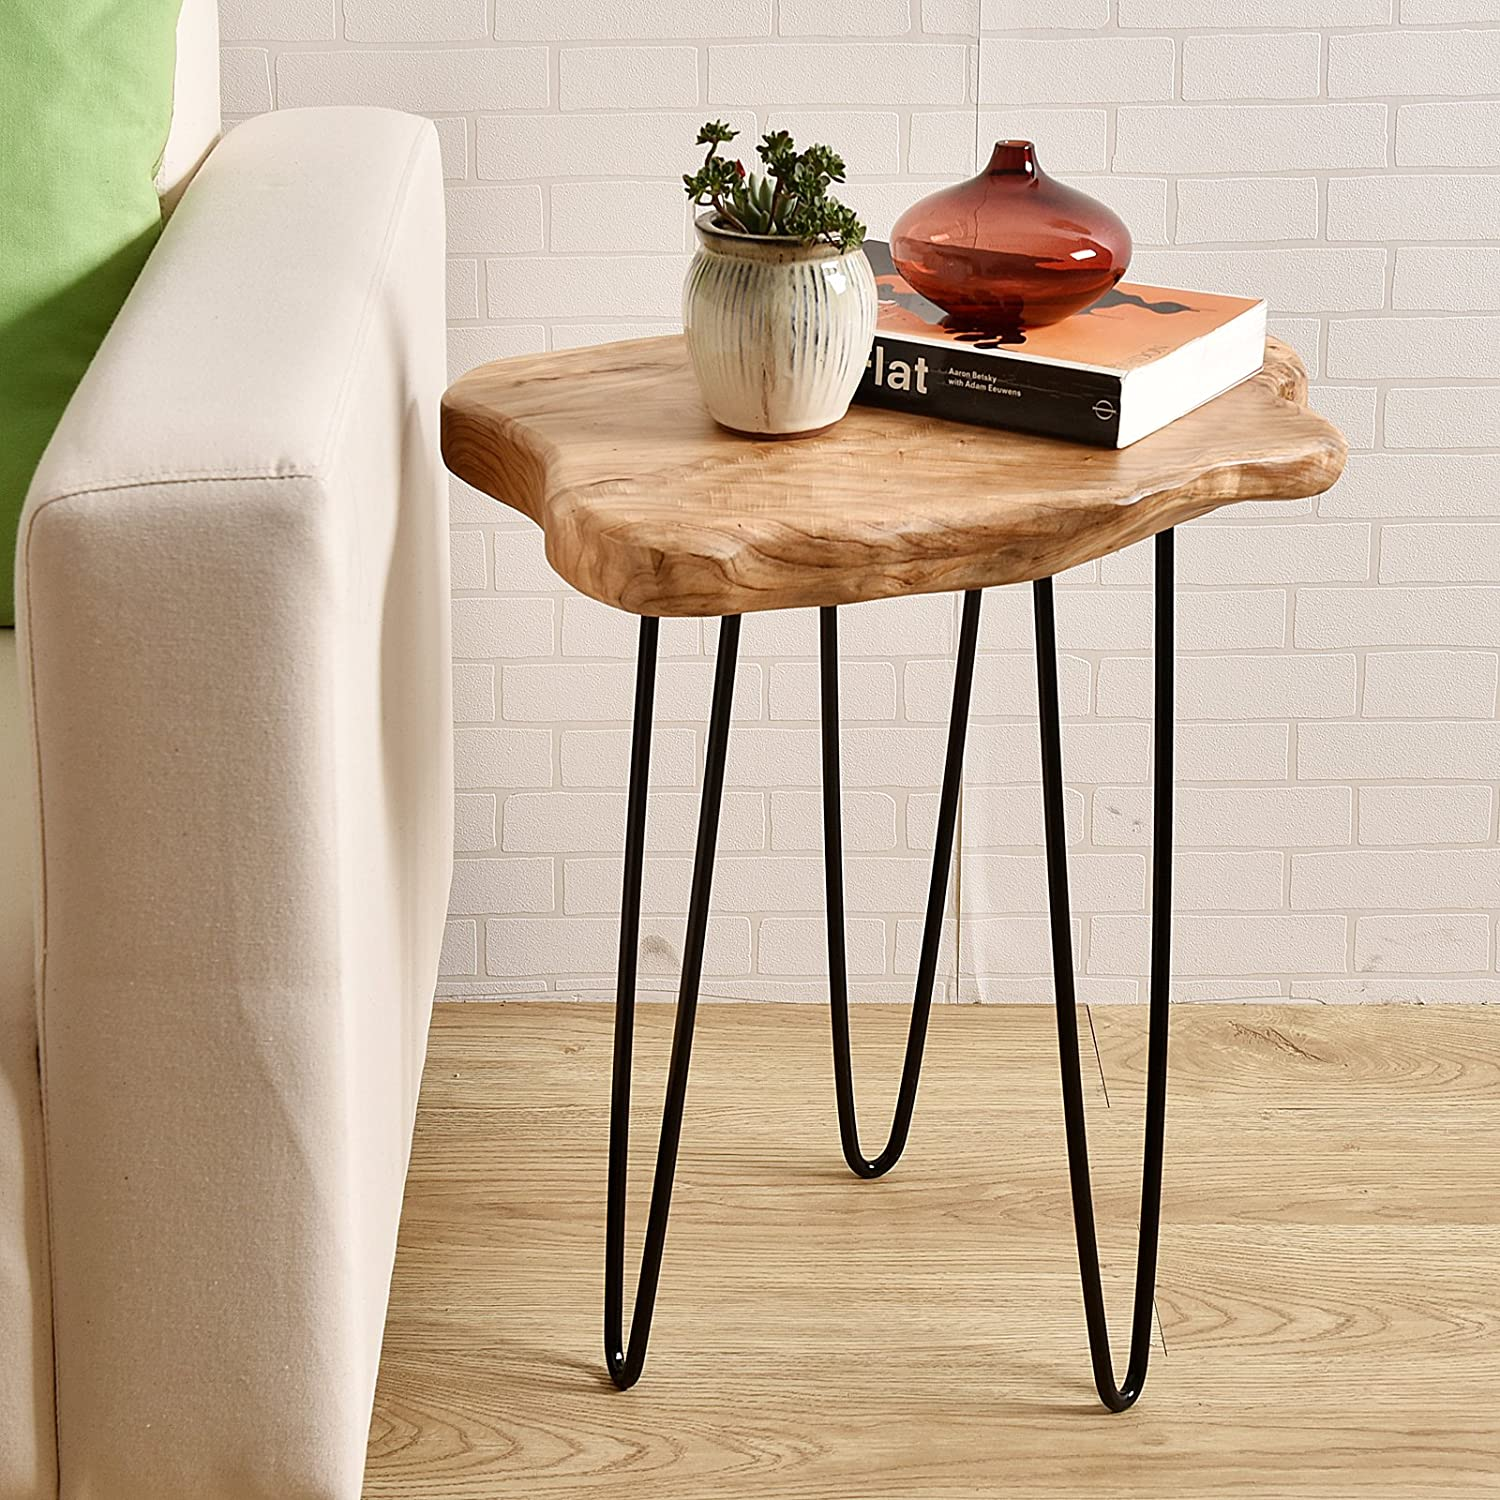 Tree Base End Table Stool CNC Digital Download Home Decor Furniture DXFAI File Type